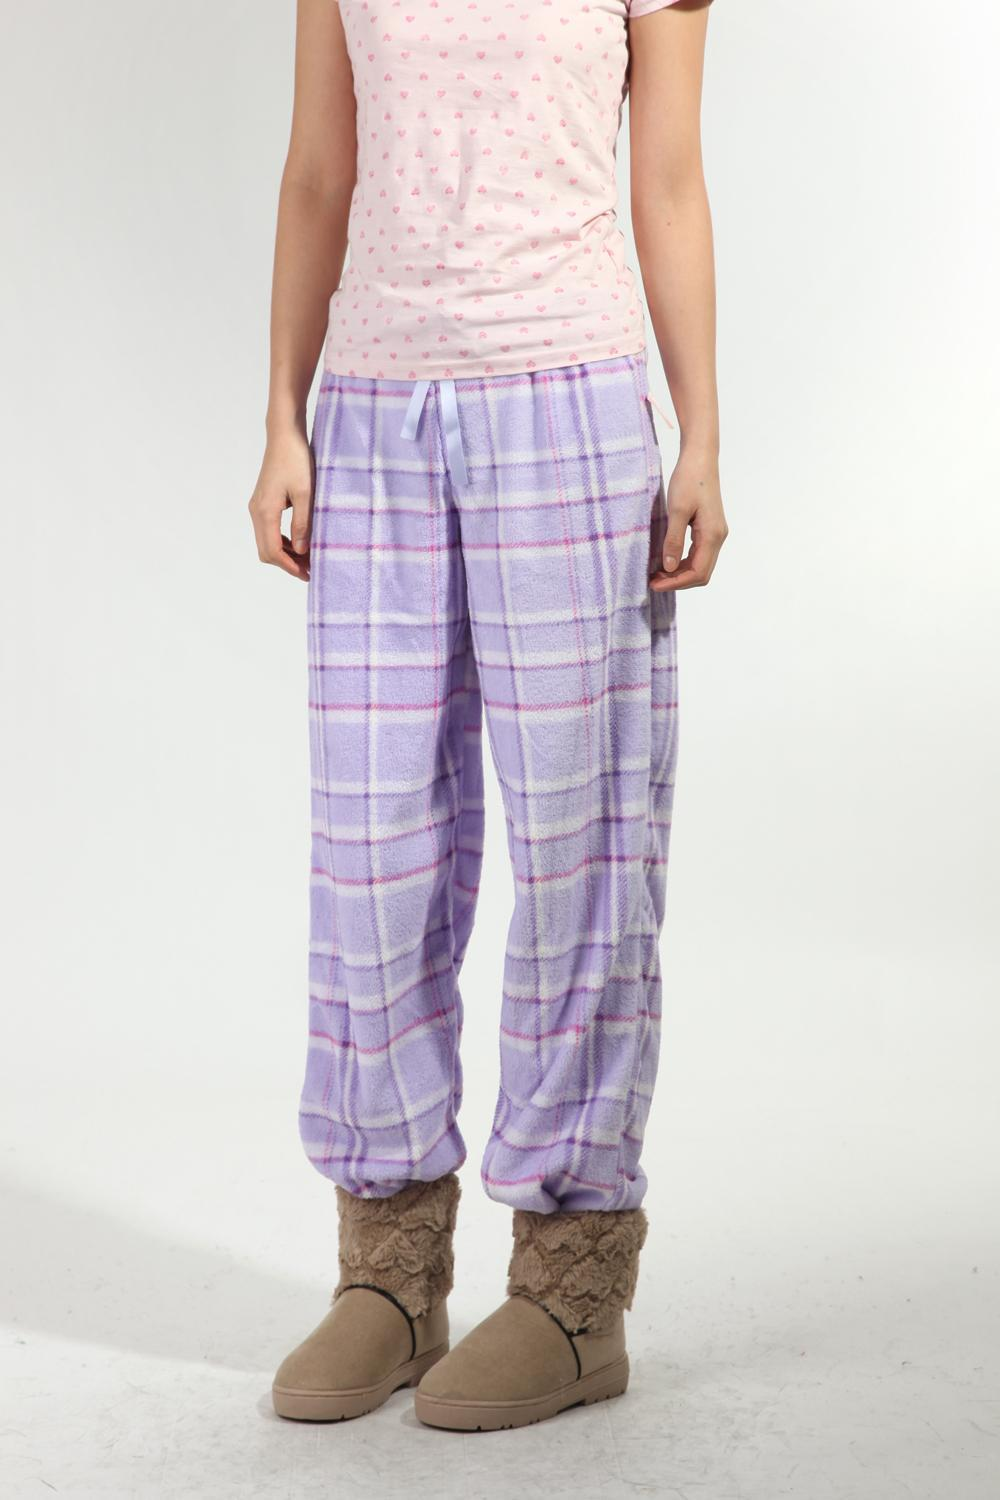 12 autumn and winter Women coral fleece home casual trousers pajama pants 1 p5 k125 (WC001)